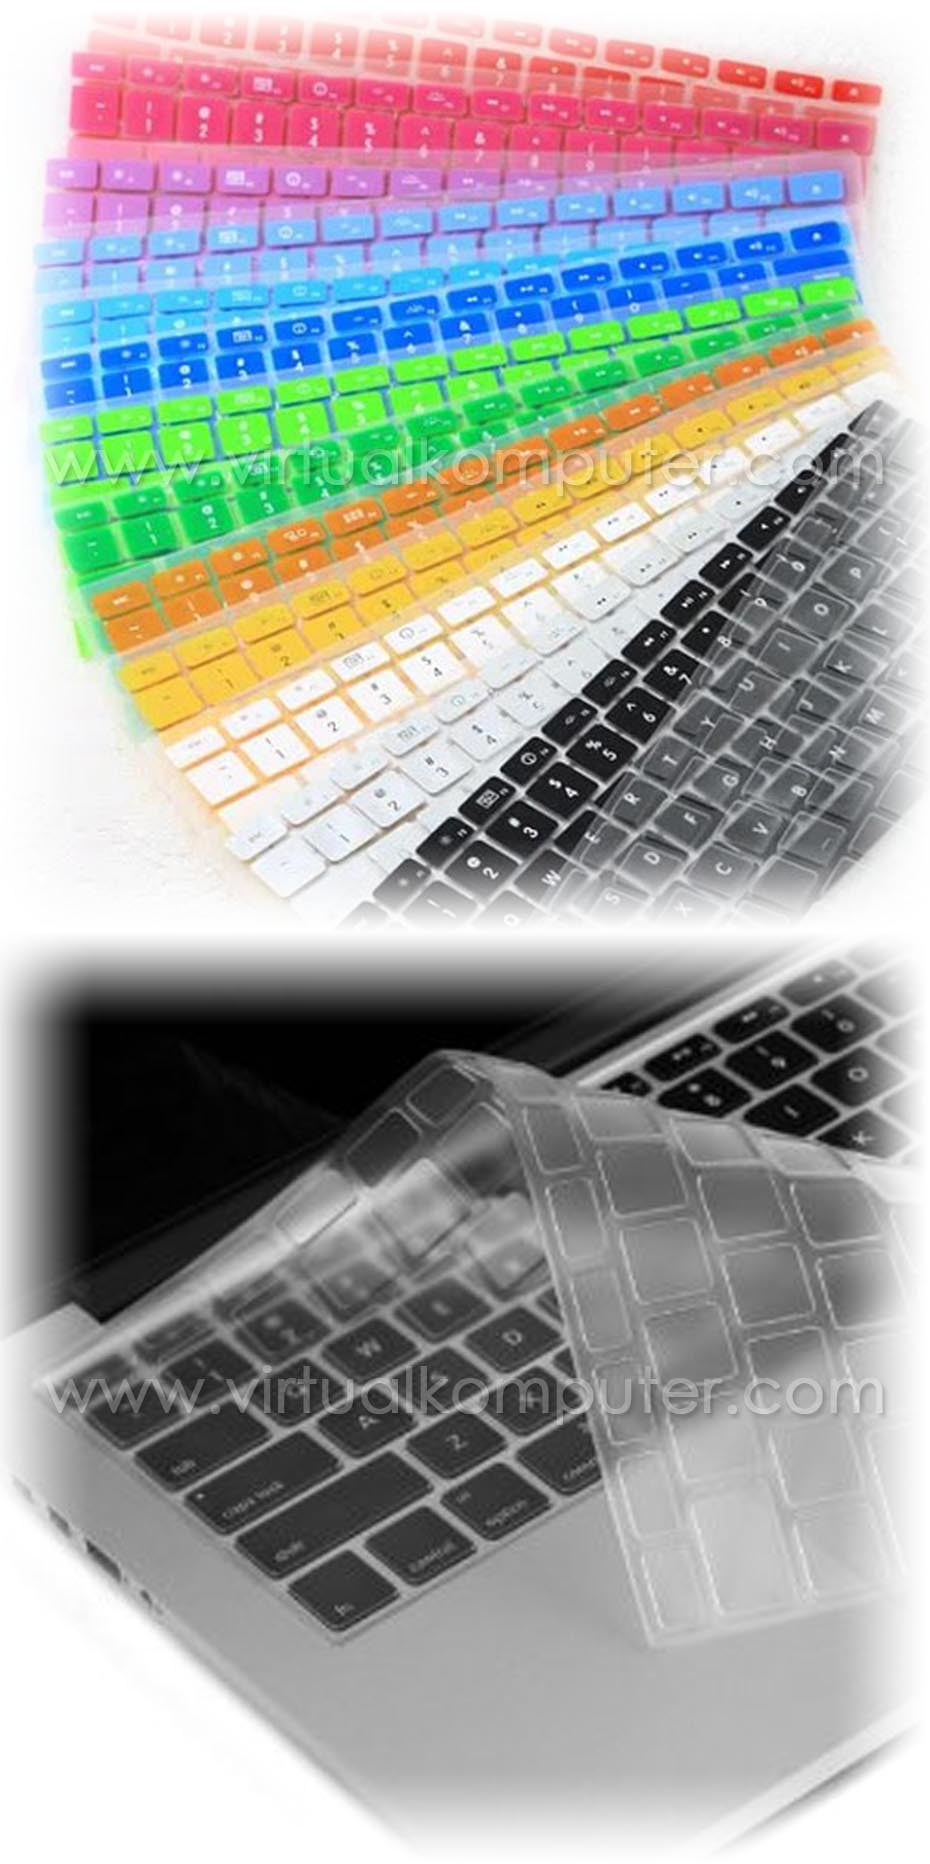 Keyboard Protector Macbook Pro 12.35, 14.13 Inch Overview